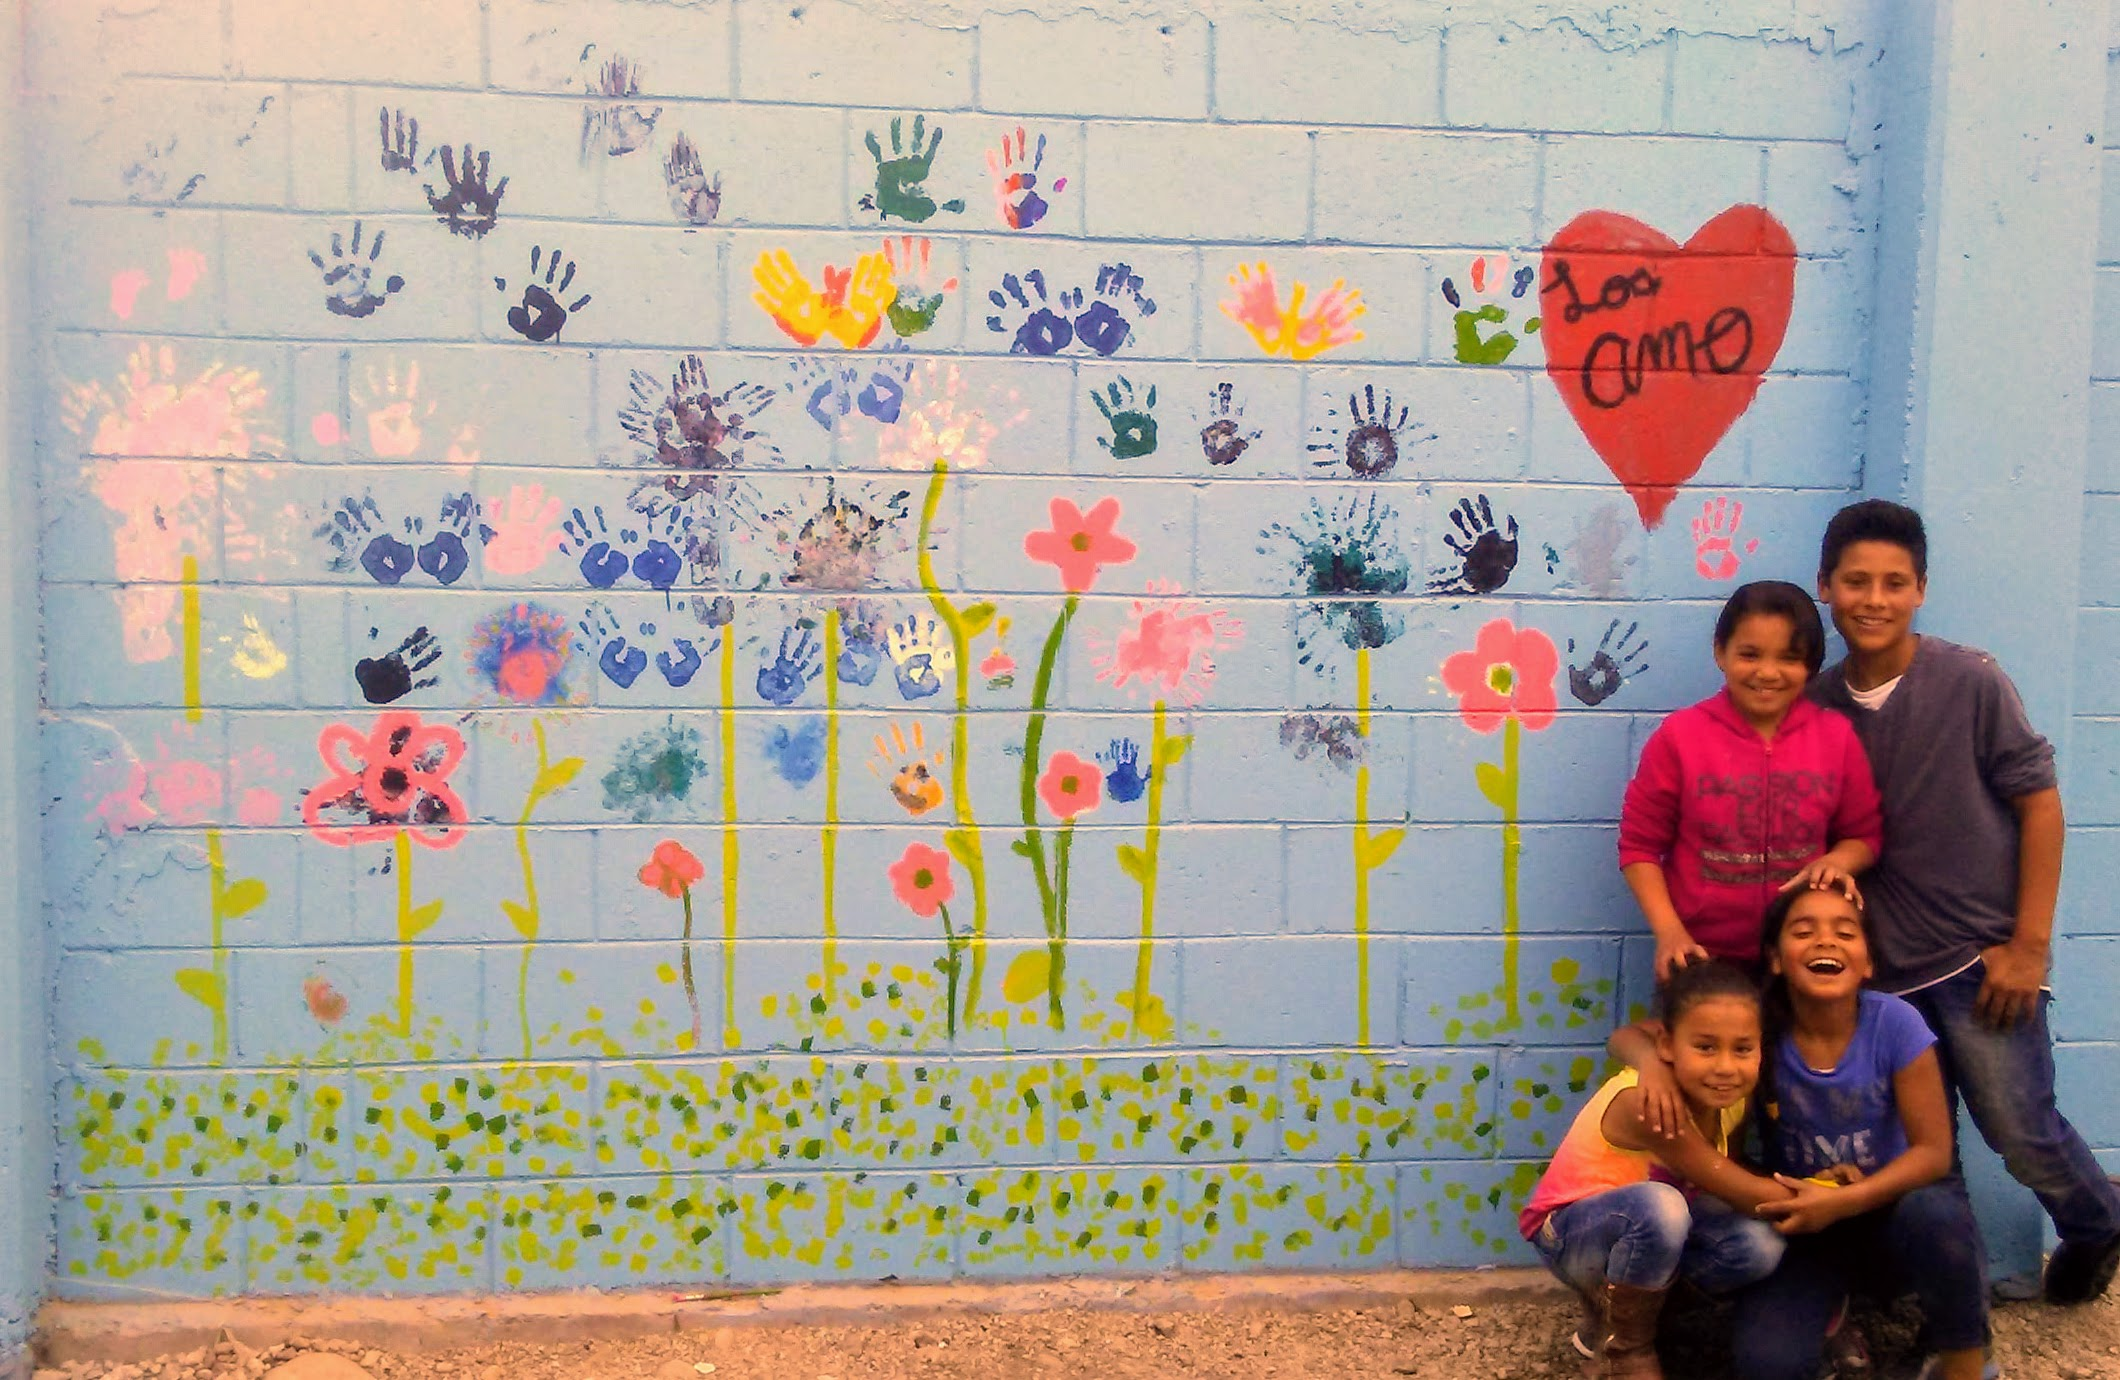 Hand painted the wall with the kids hands, heart, and joy!